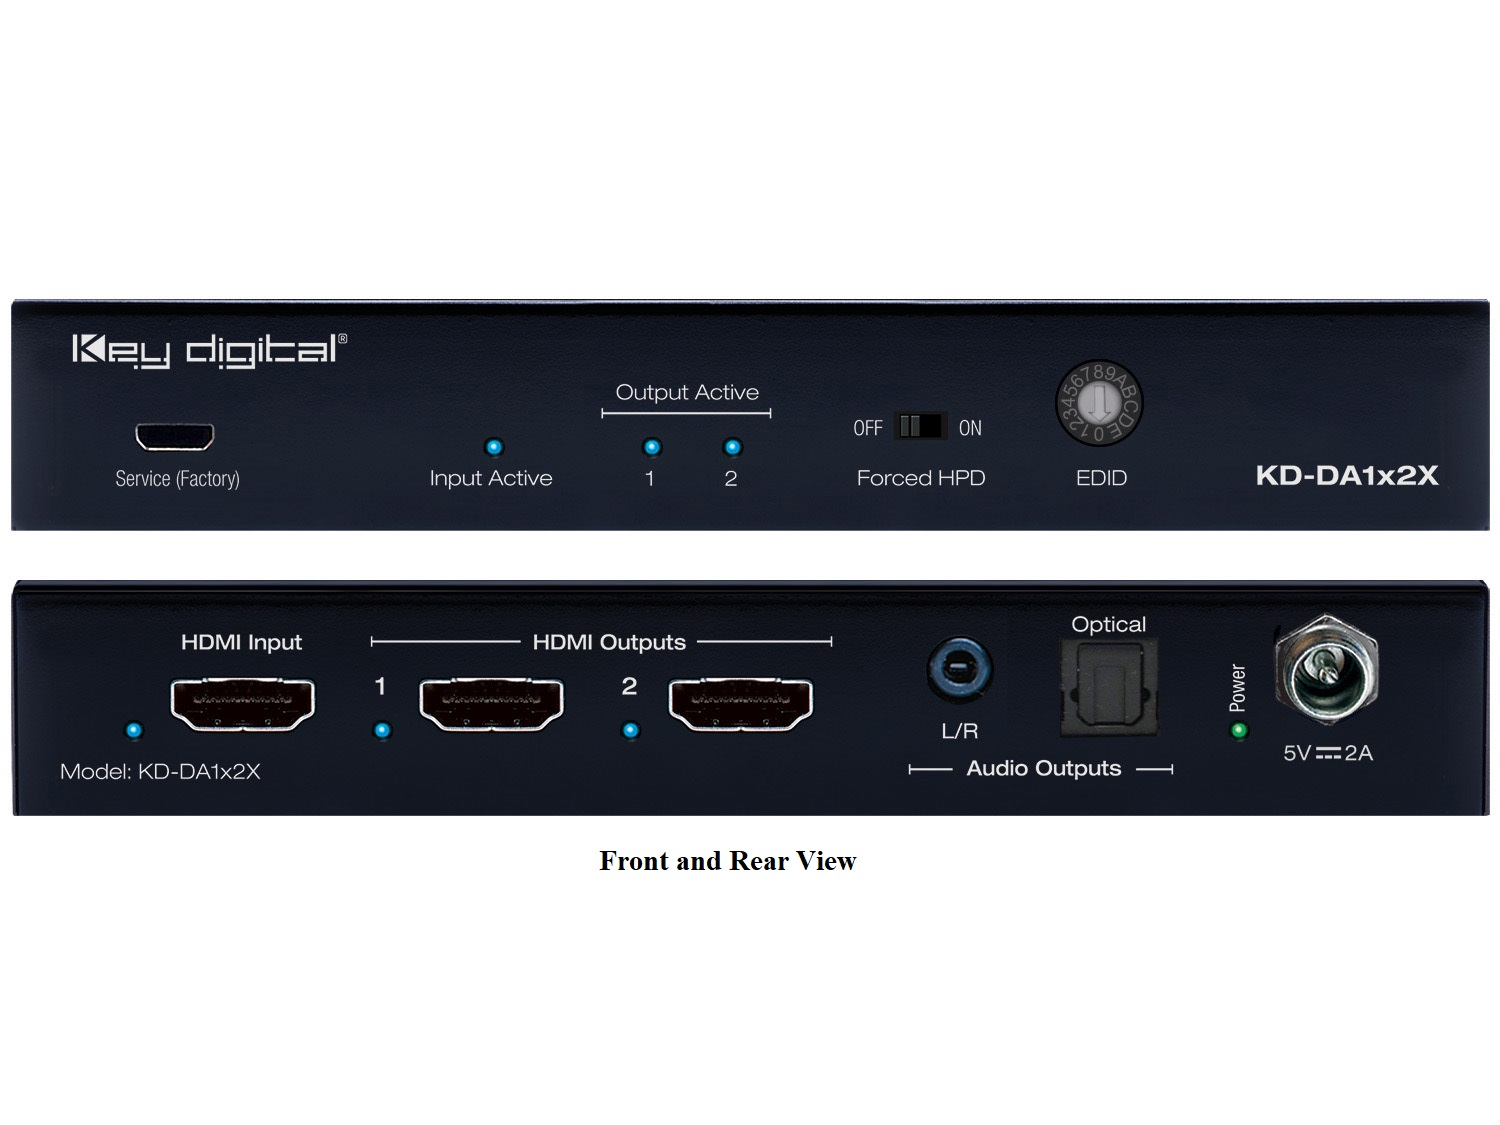 KD-DA1x2X 1x2 (4K/60Hz/18G/444) HDMI Distribution Amplifier with L/R Optical Audio and De-Embedded Audio Output by Key Digital